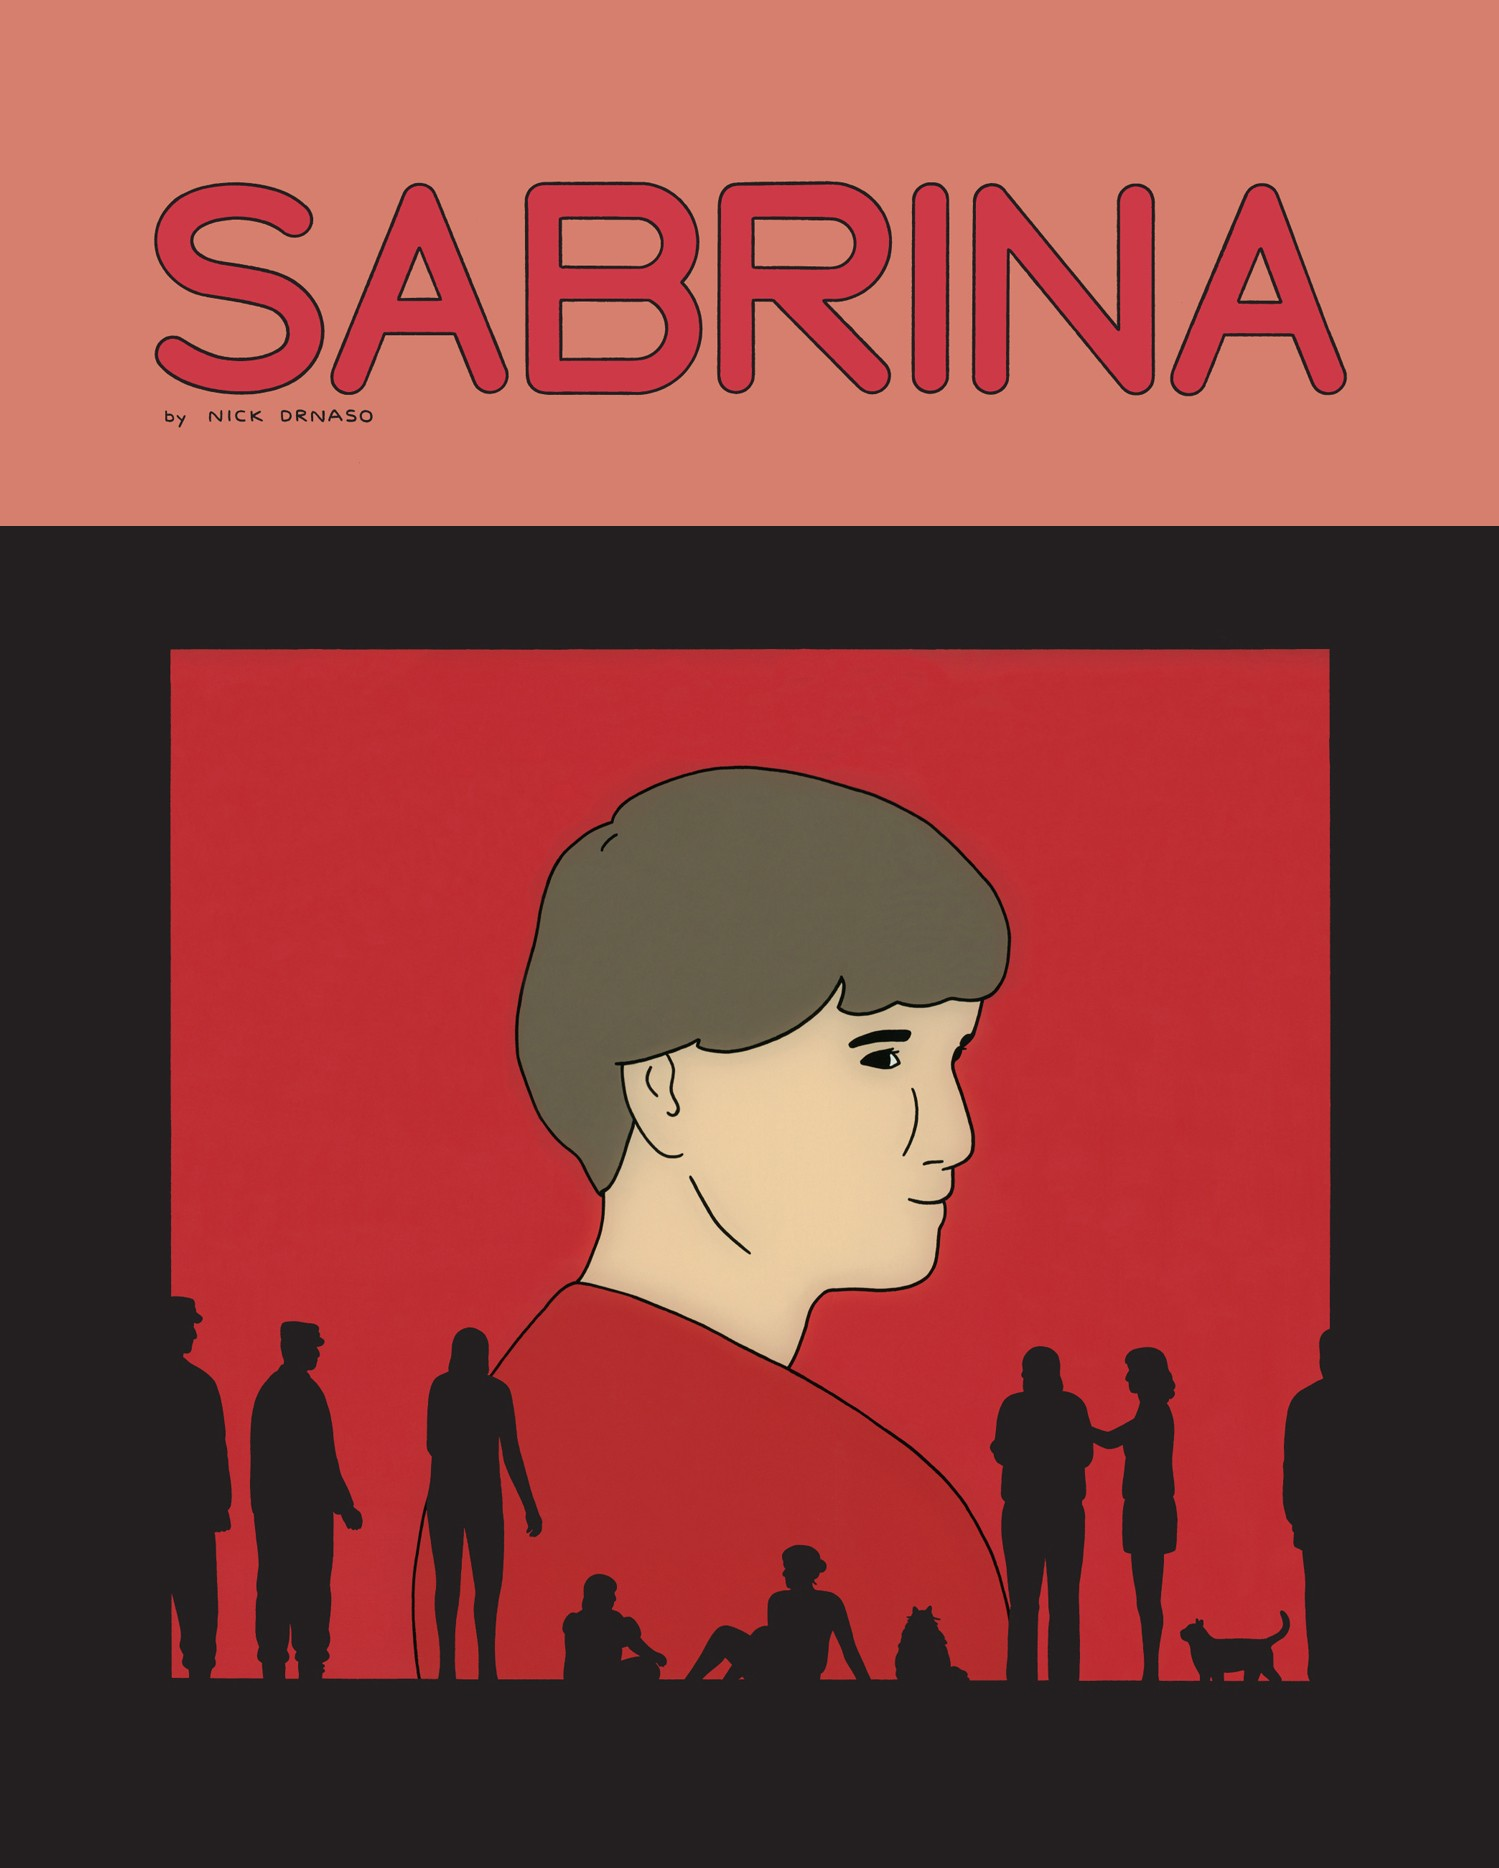 Image result for sabrina drnaso book cover